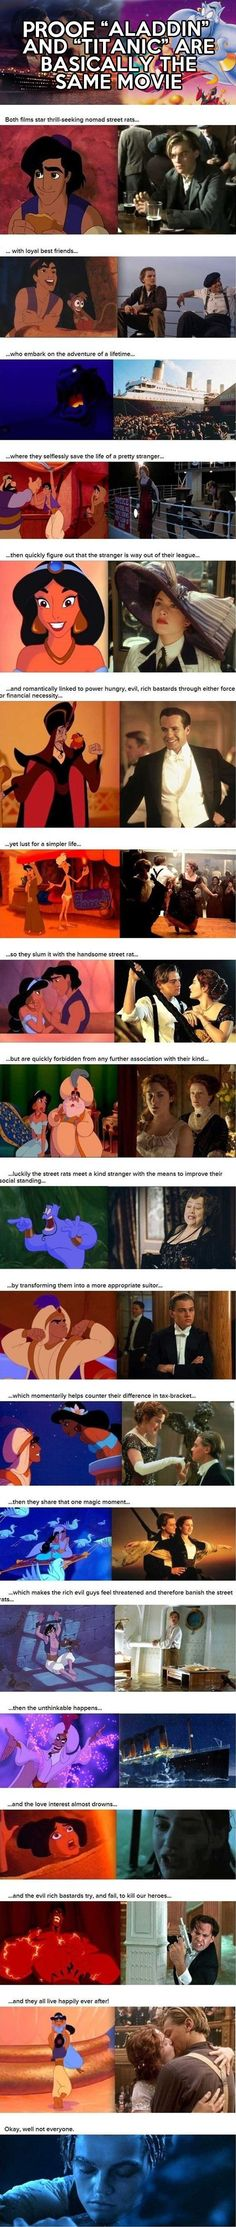 Proof they're basically the same movie… - One Stop Humor: Funny Pictures and Videos!